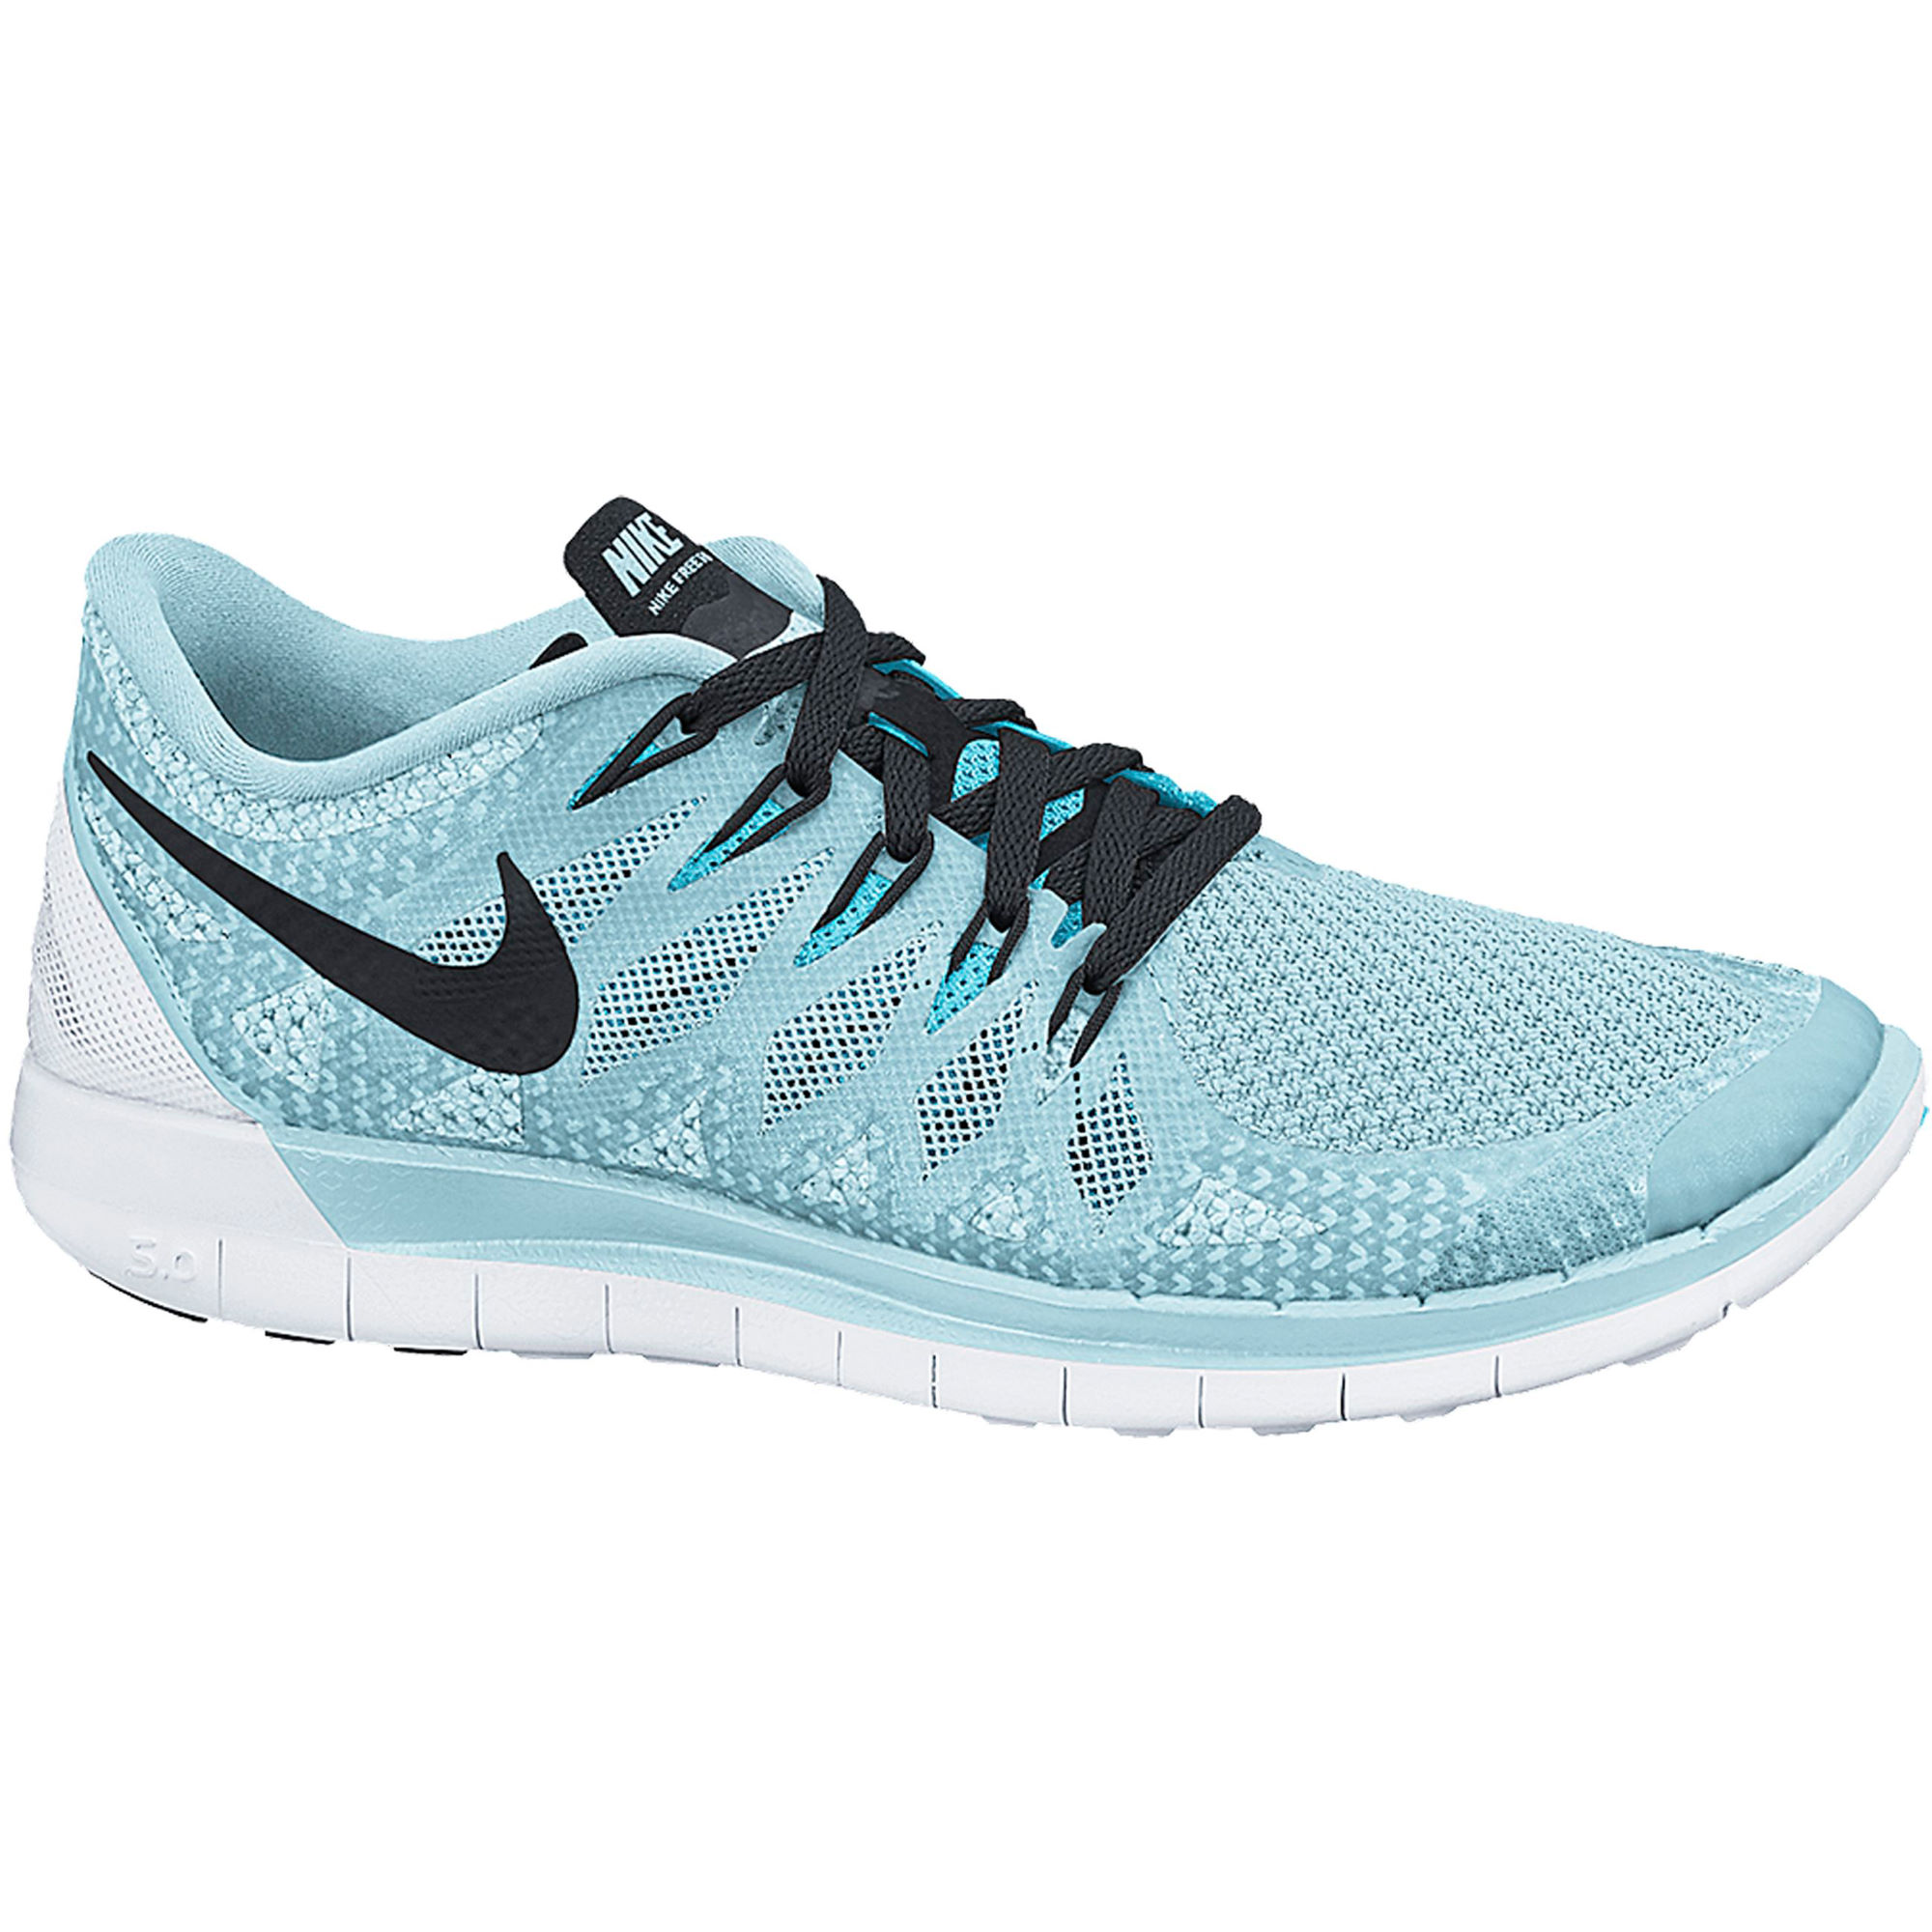 New 50 Sale Cheap Shoes Free Womens Preowned On Running Black Nike Sneakers,Cheap Nike Free Run 3 BlackWhite Boys On Sale,Cheap Nike Free 50 Womens Running Shoes Black Sneakers Preowned On Sale 50 Free Black